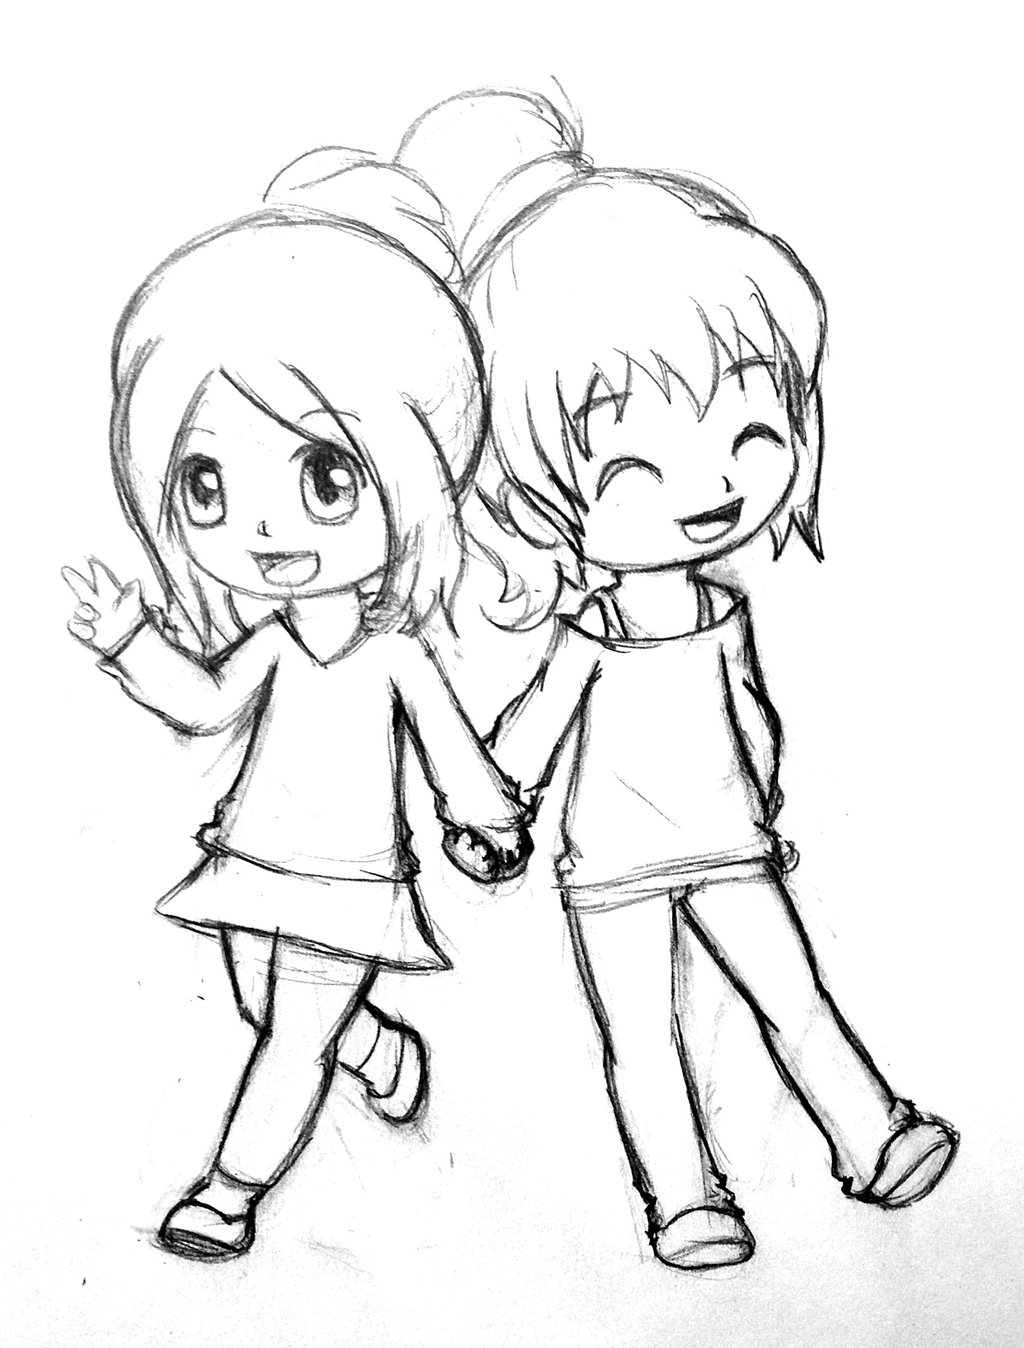 1024x1348 Best Friends Sketch Best Friend Boy And Girl Sketch Boy And Girl